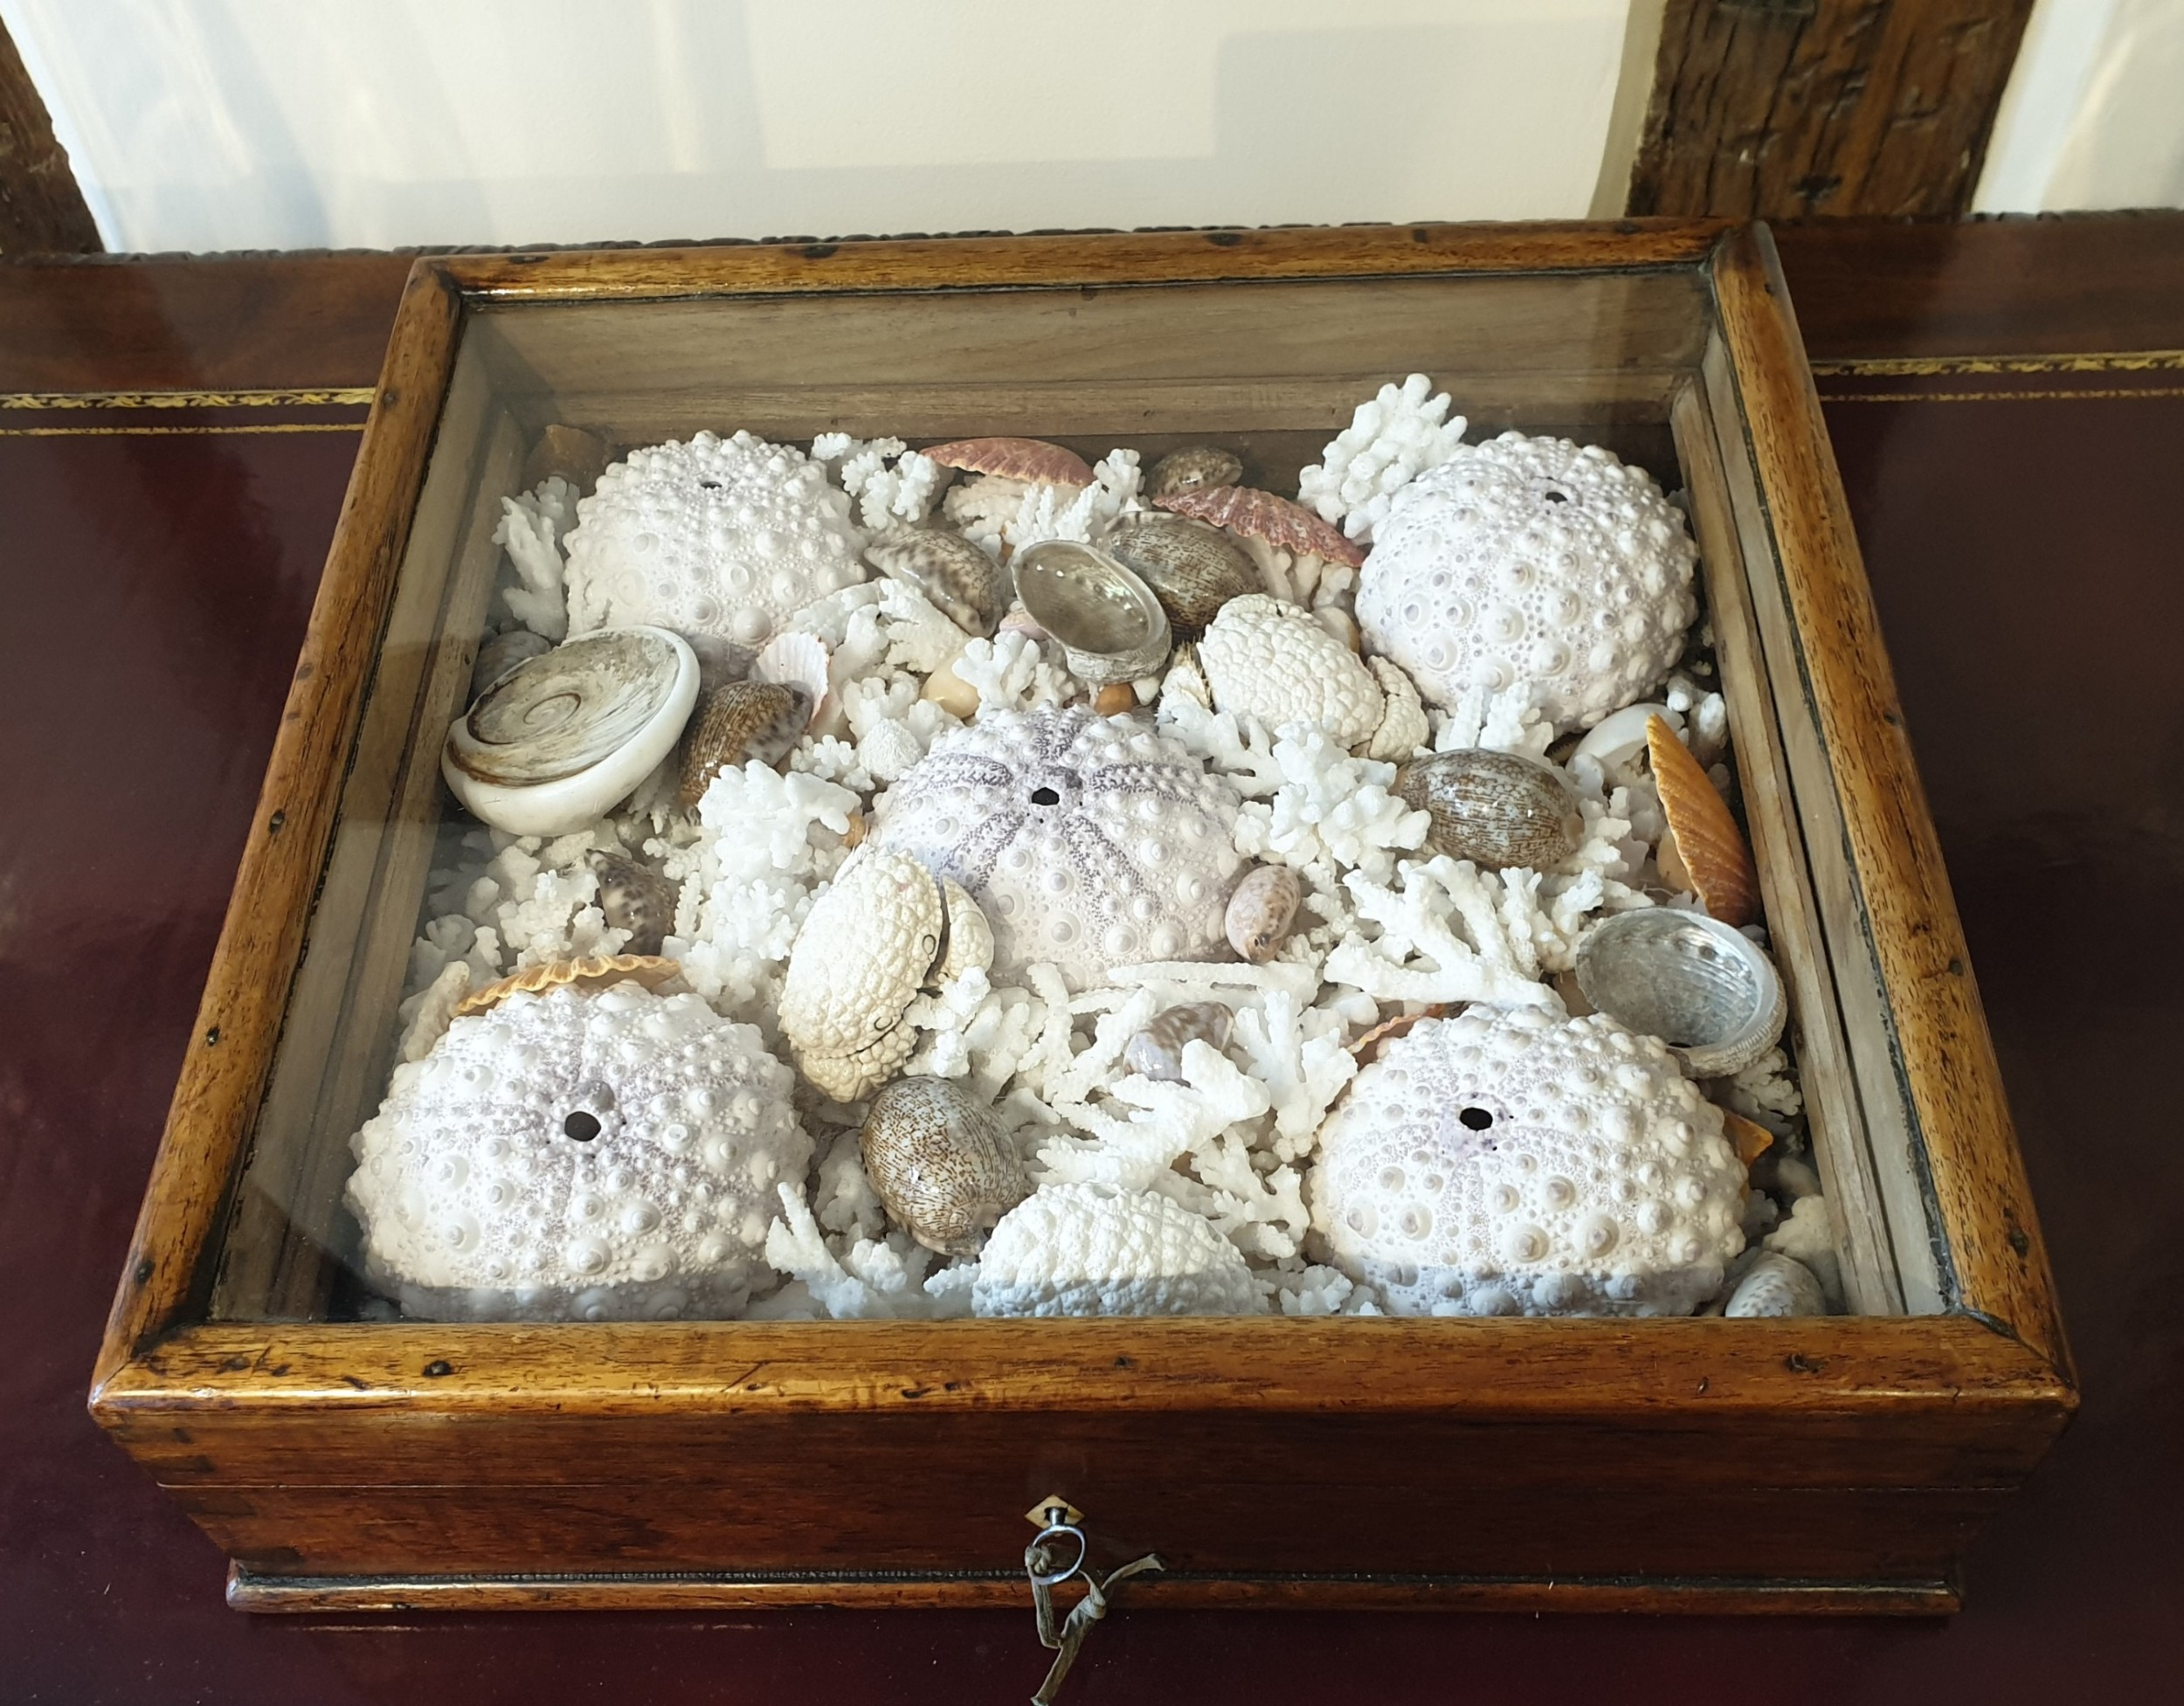 a collection of shells and crustacean in its original 19th century glazed top case